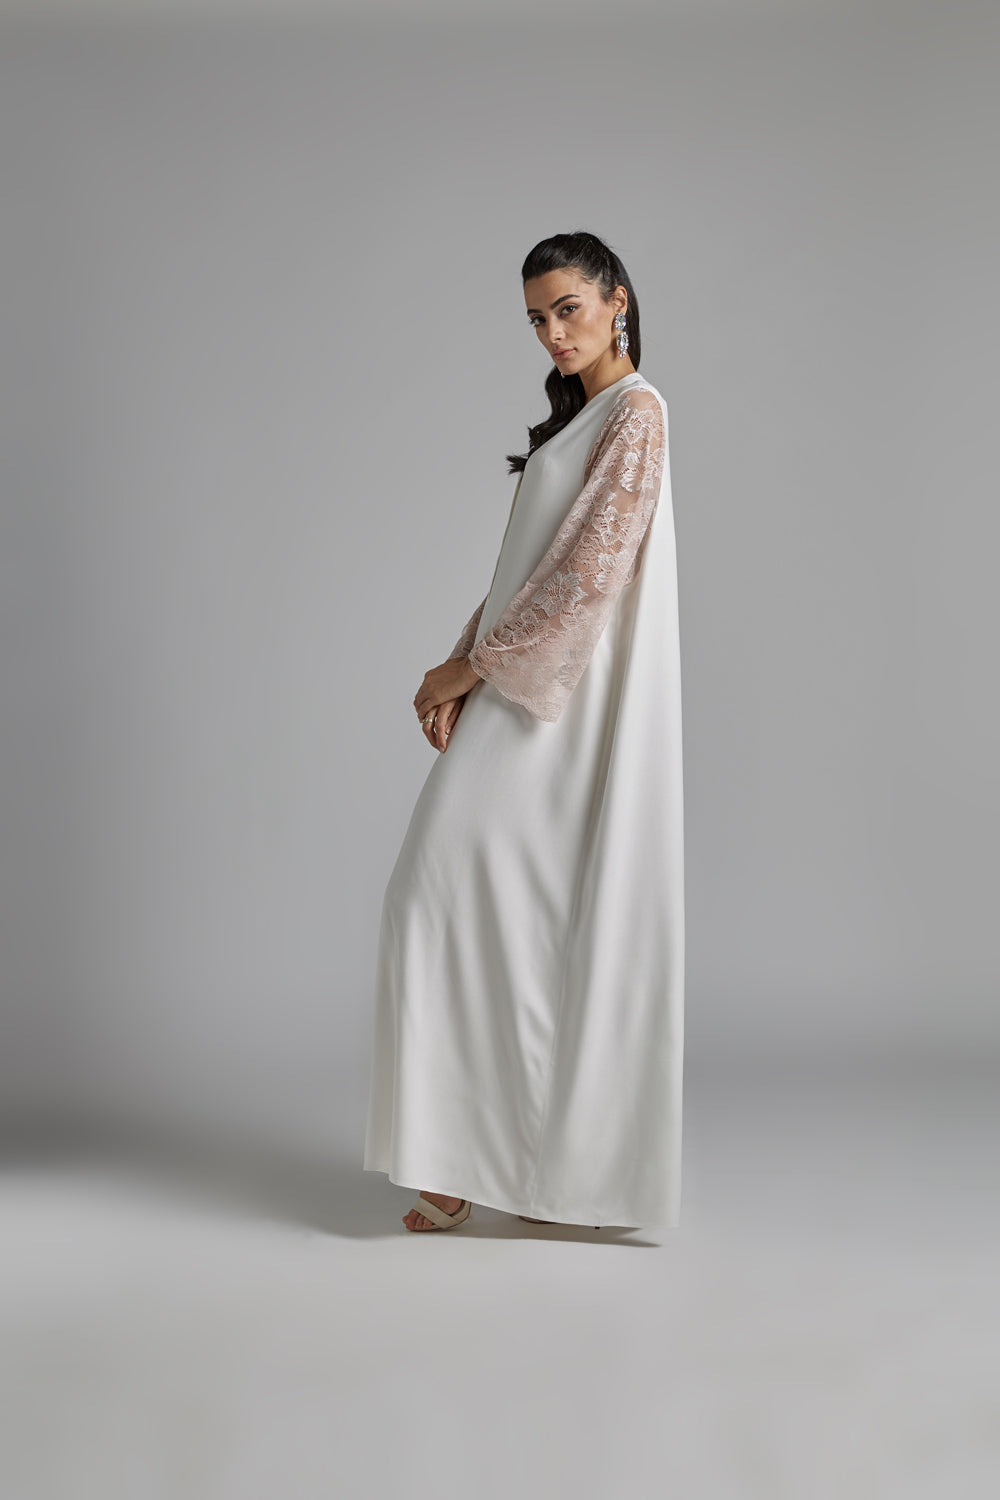 Nightgown Off White and Light Pink - Lora